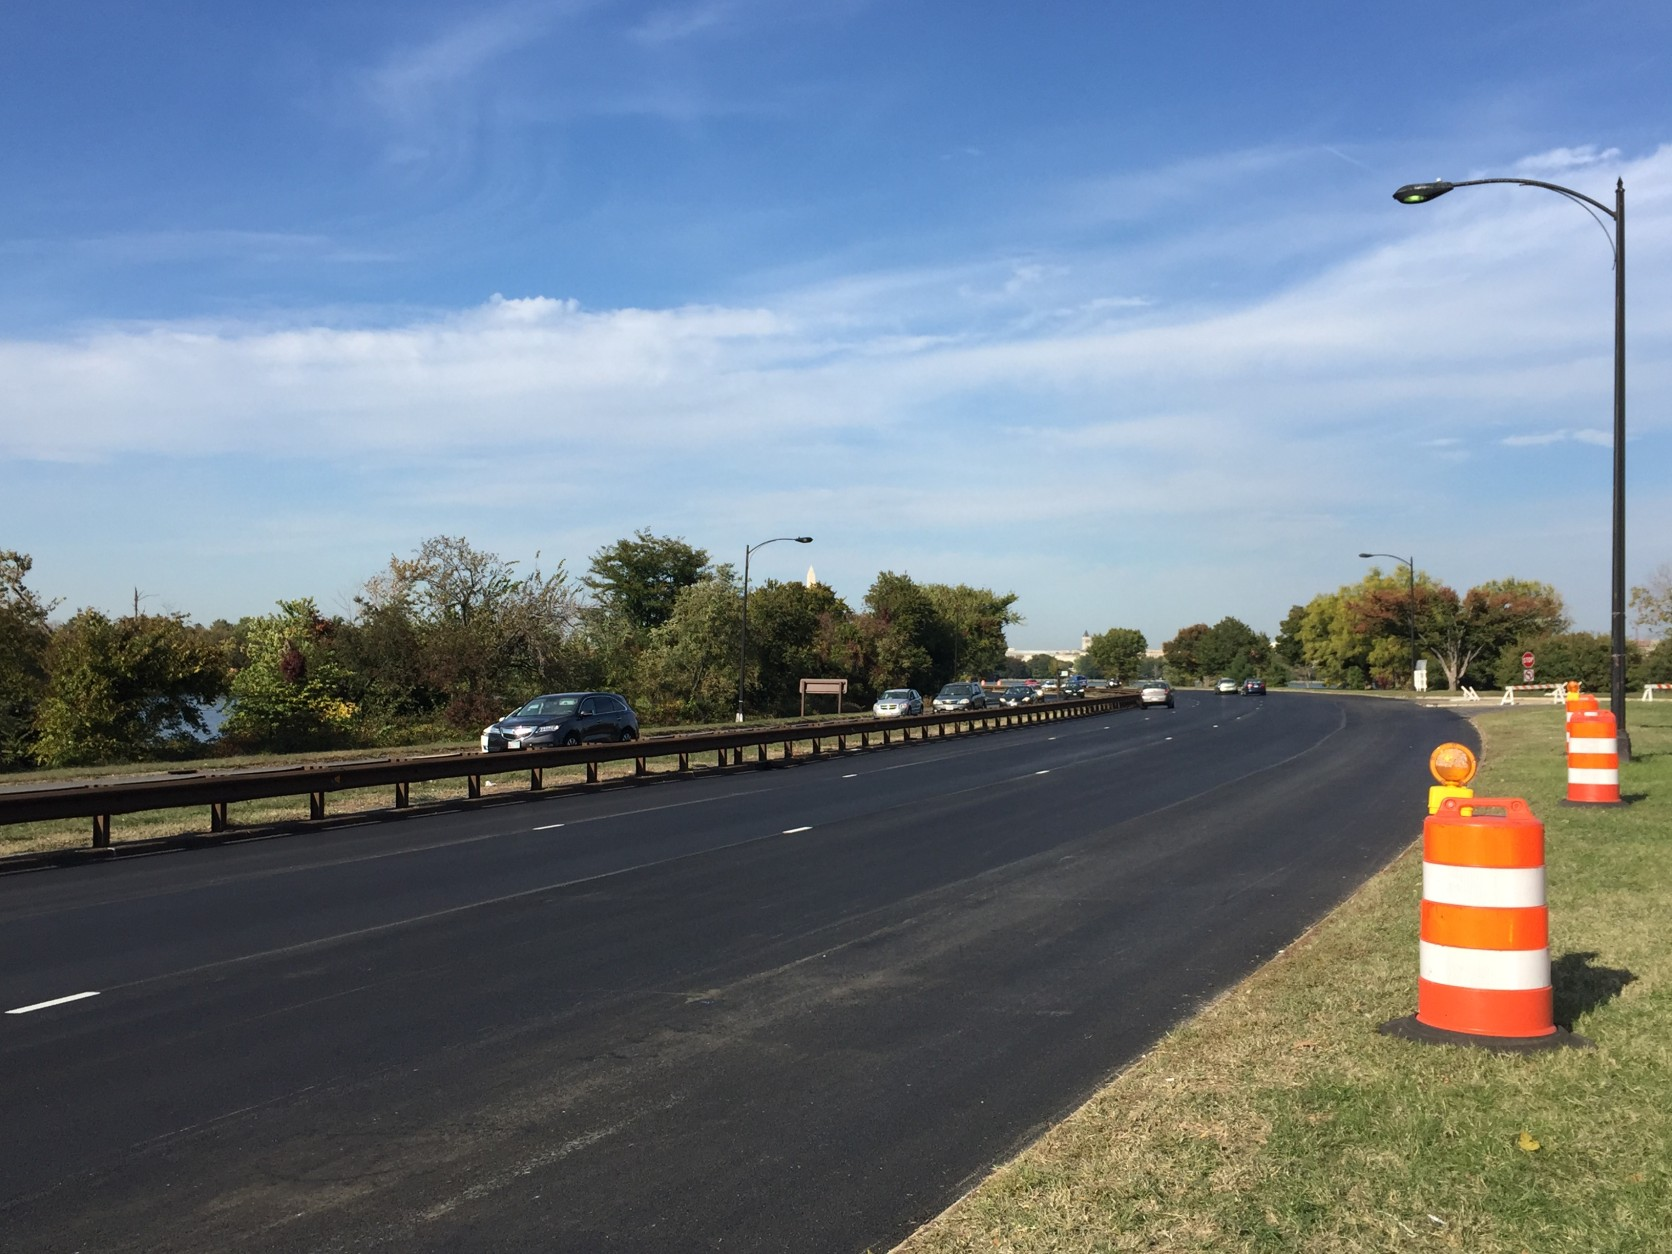 A smooth ride is ahead. A stretch of the GW Parkway north of Reagan National Airport will be finished soon. (WTOP/Andrew Mollenbeck)